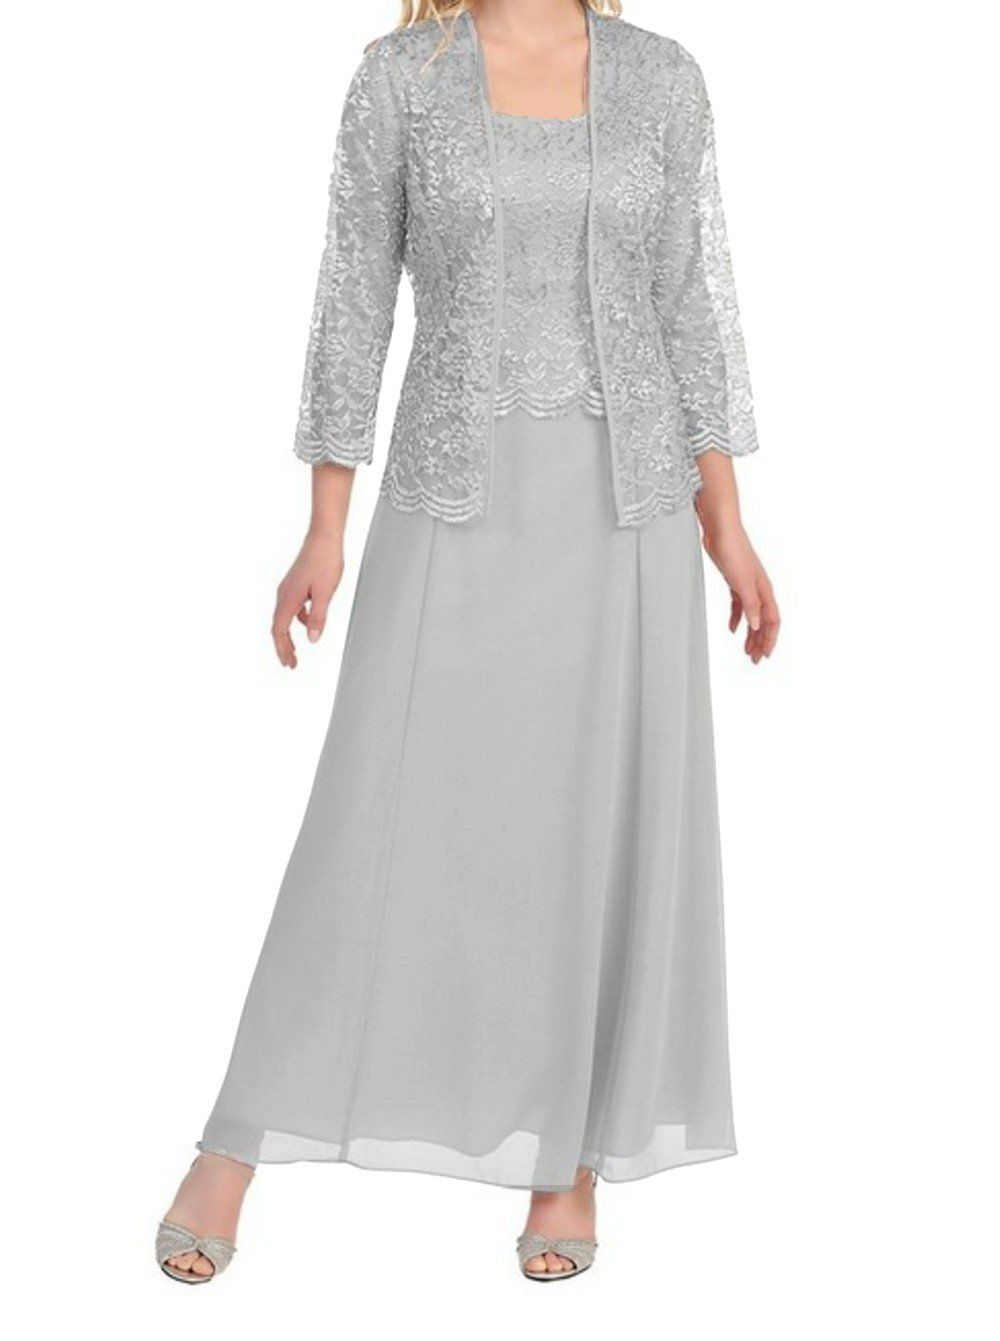 02269da4c0b Womens Long Mother of the Bride Plus Size Formal Lace Dress with Jacket  (2X